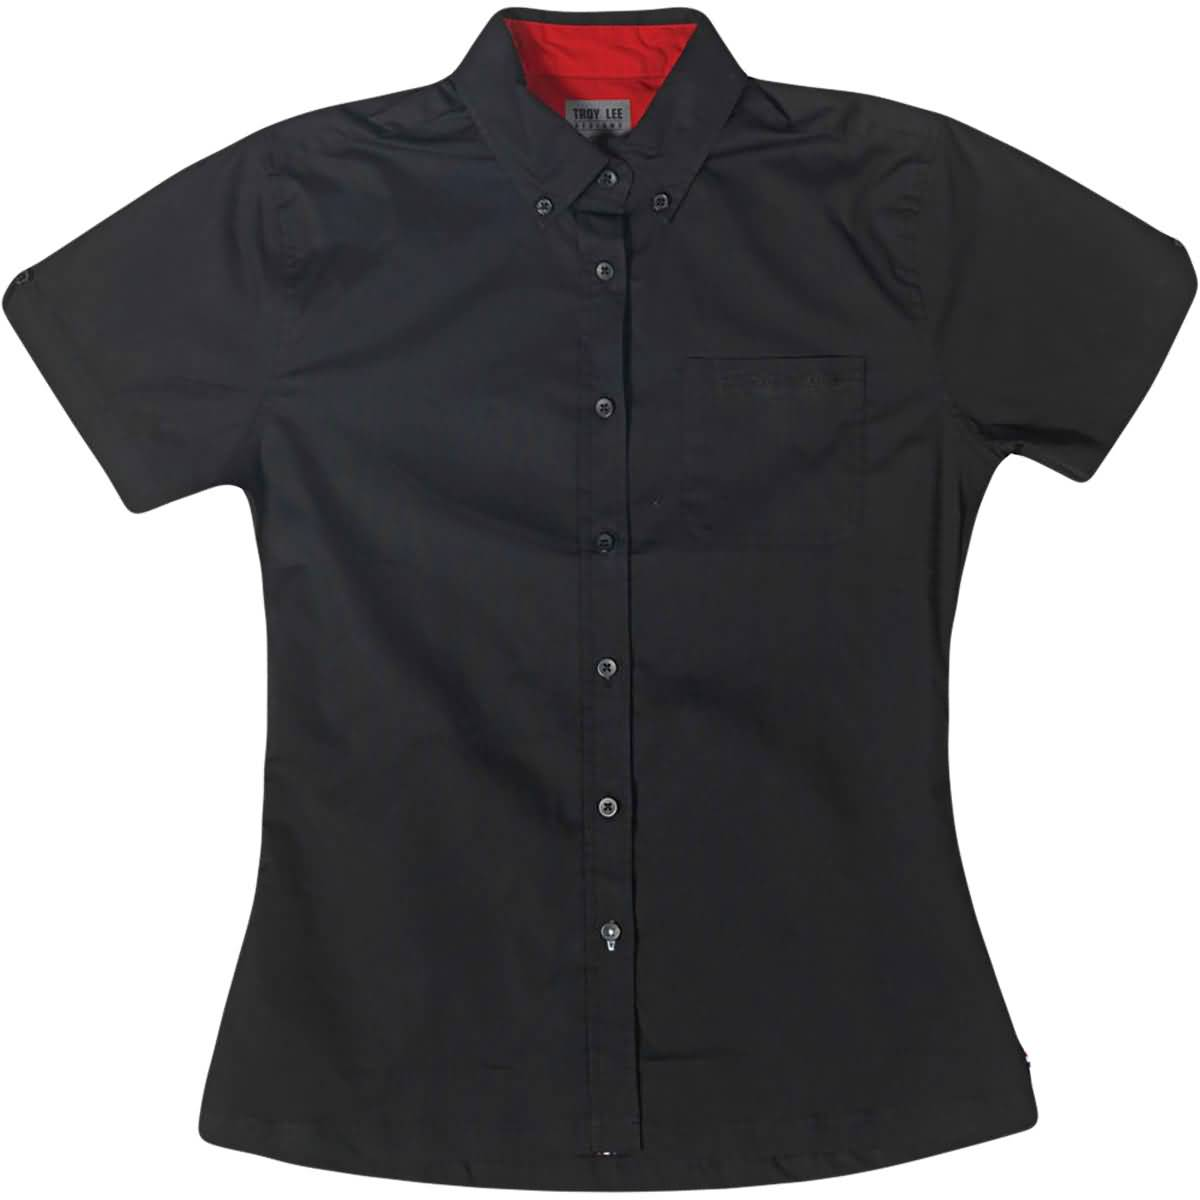 Troy Lee Designs Shop Women's Button Up Short-Sleeve Shirts-6402